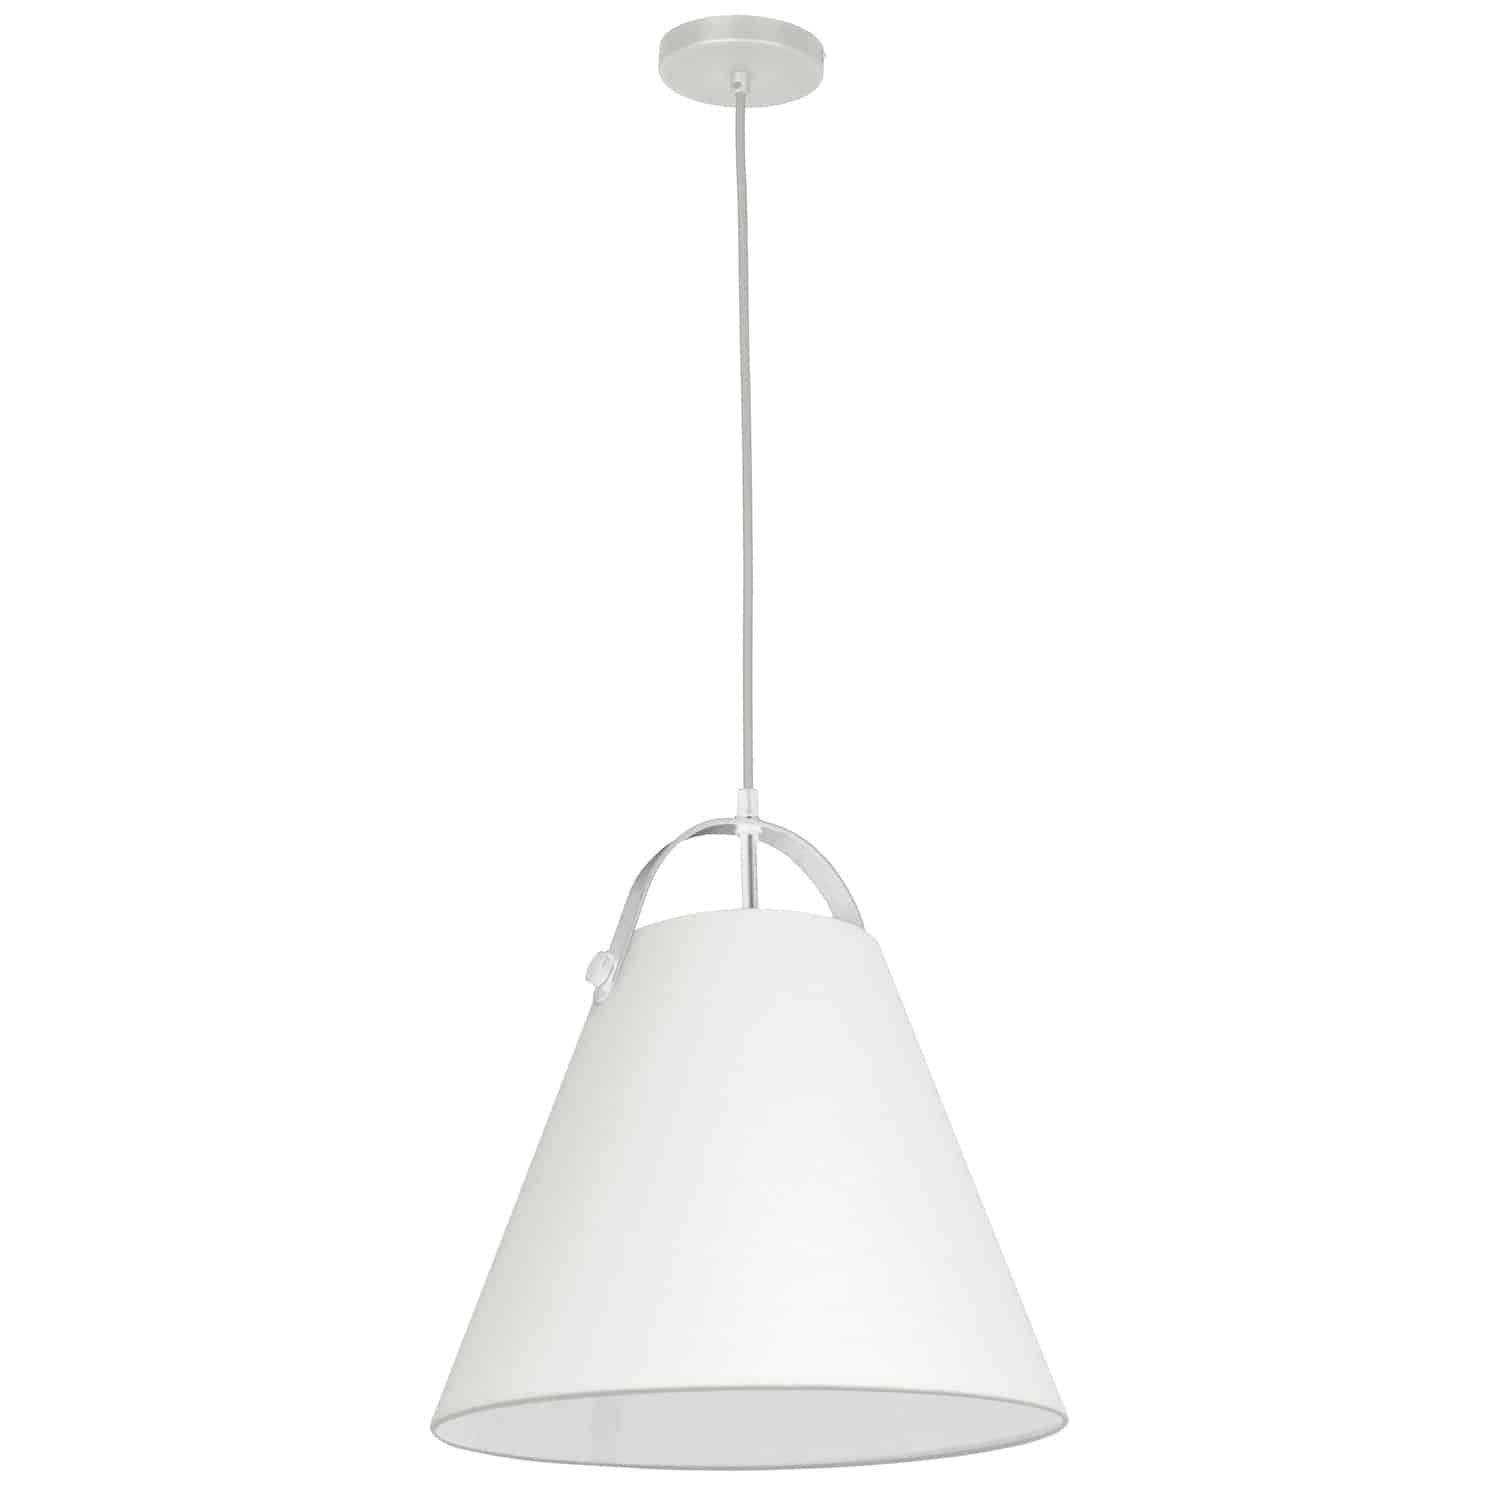 1 Light Emperor Pendant White with Off White Shade